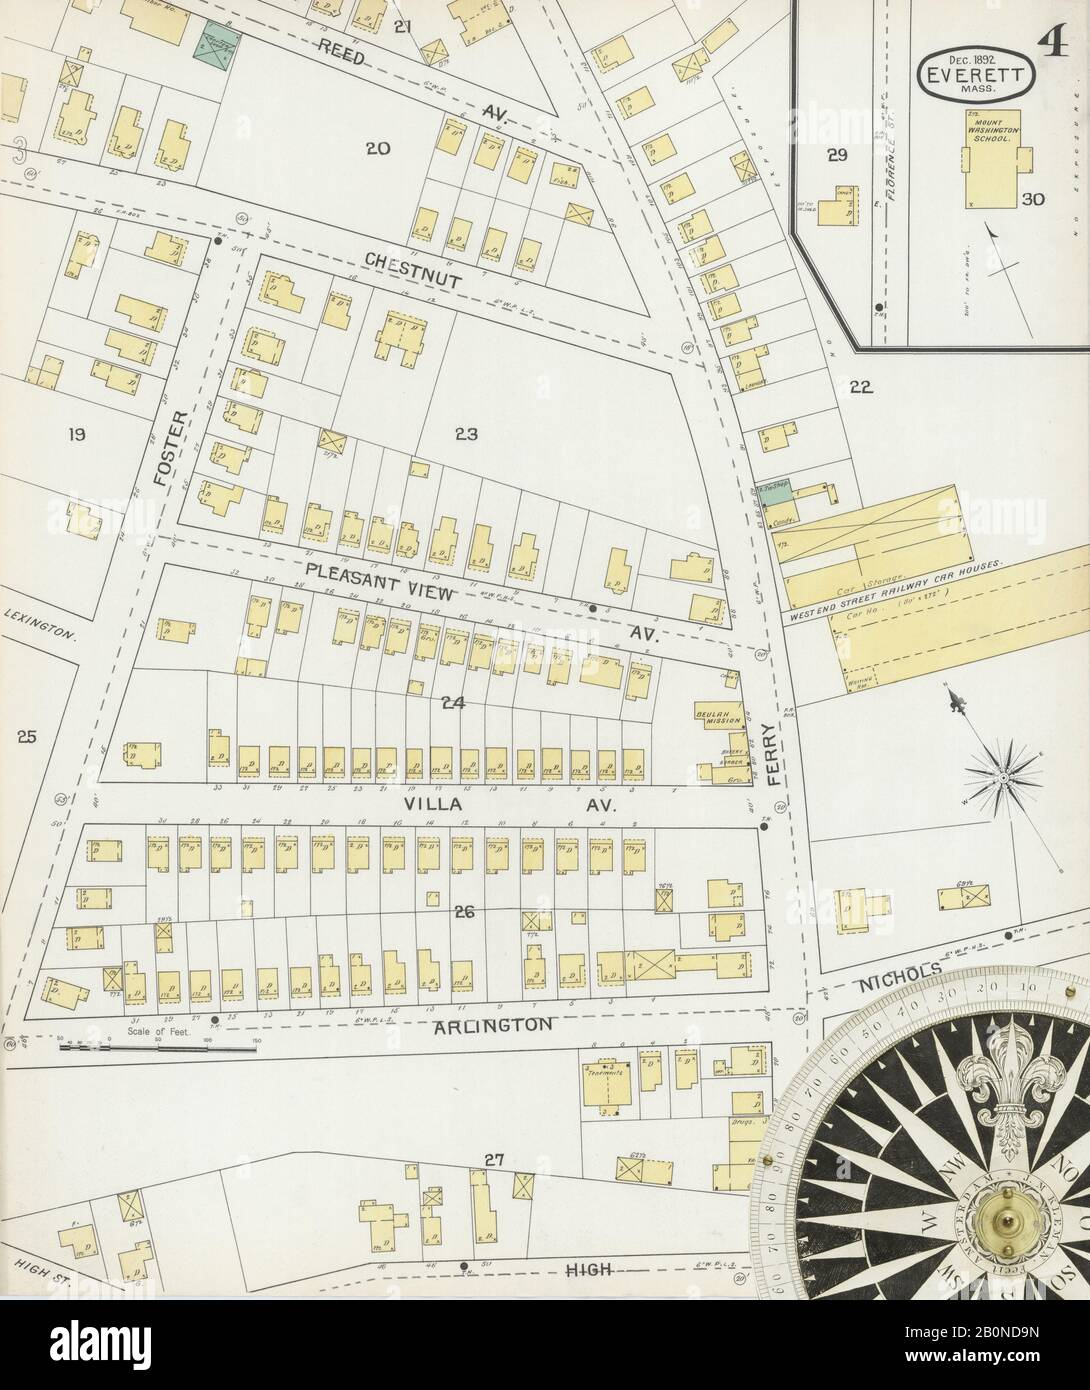 Image 4 of Sanborn Fire Insurance Map from Everett, Middlesex County, Massachusetts. Dec 1892. 16 Sheet(s), America, street map with a Nineteenth Century compass Stock Photo